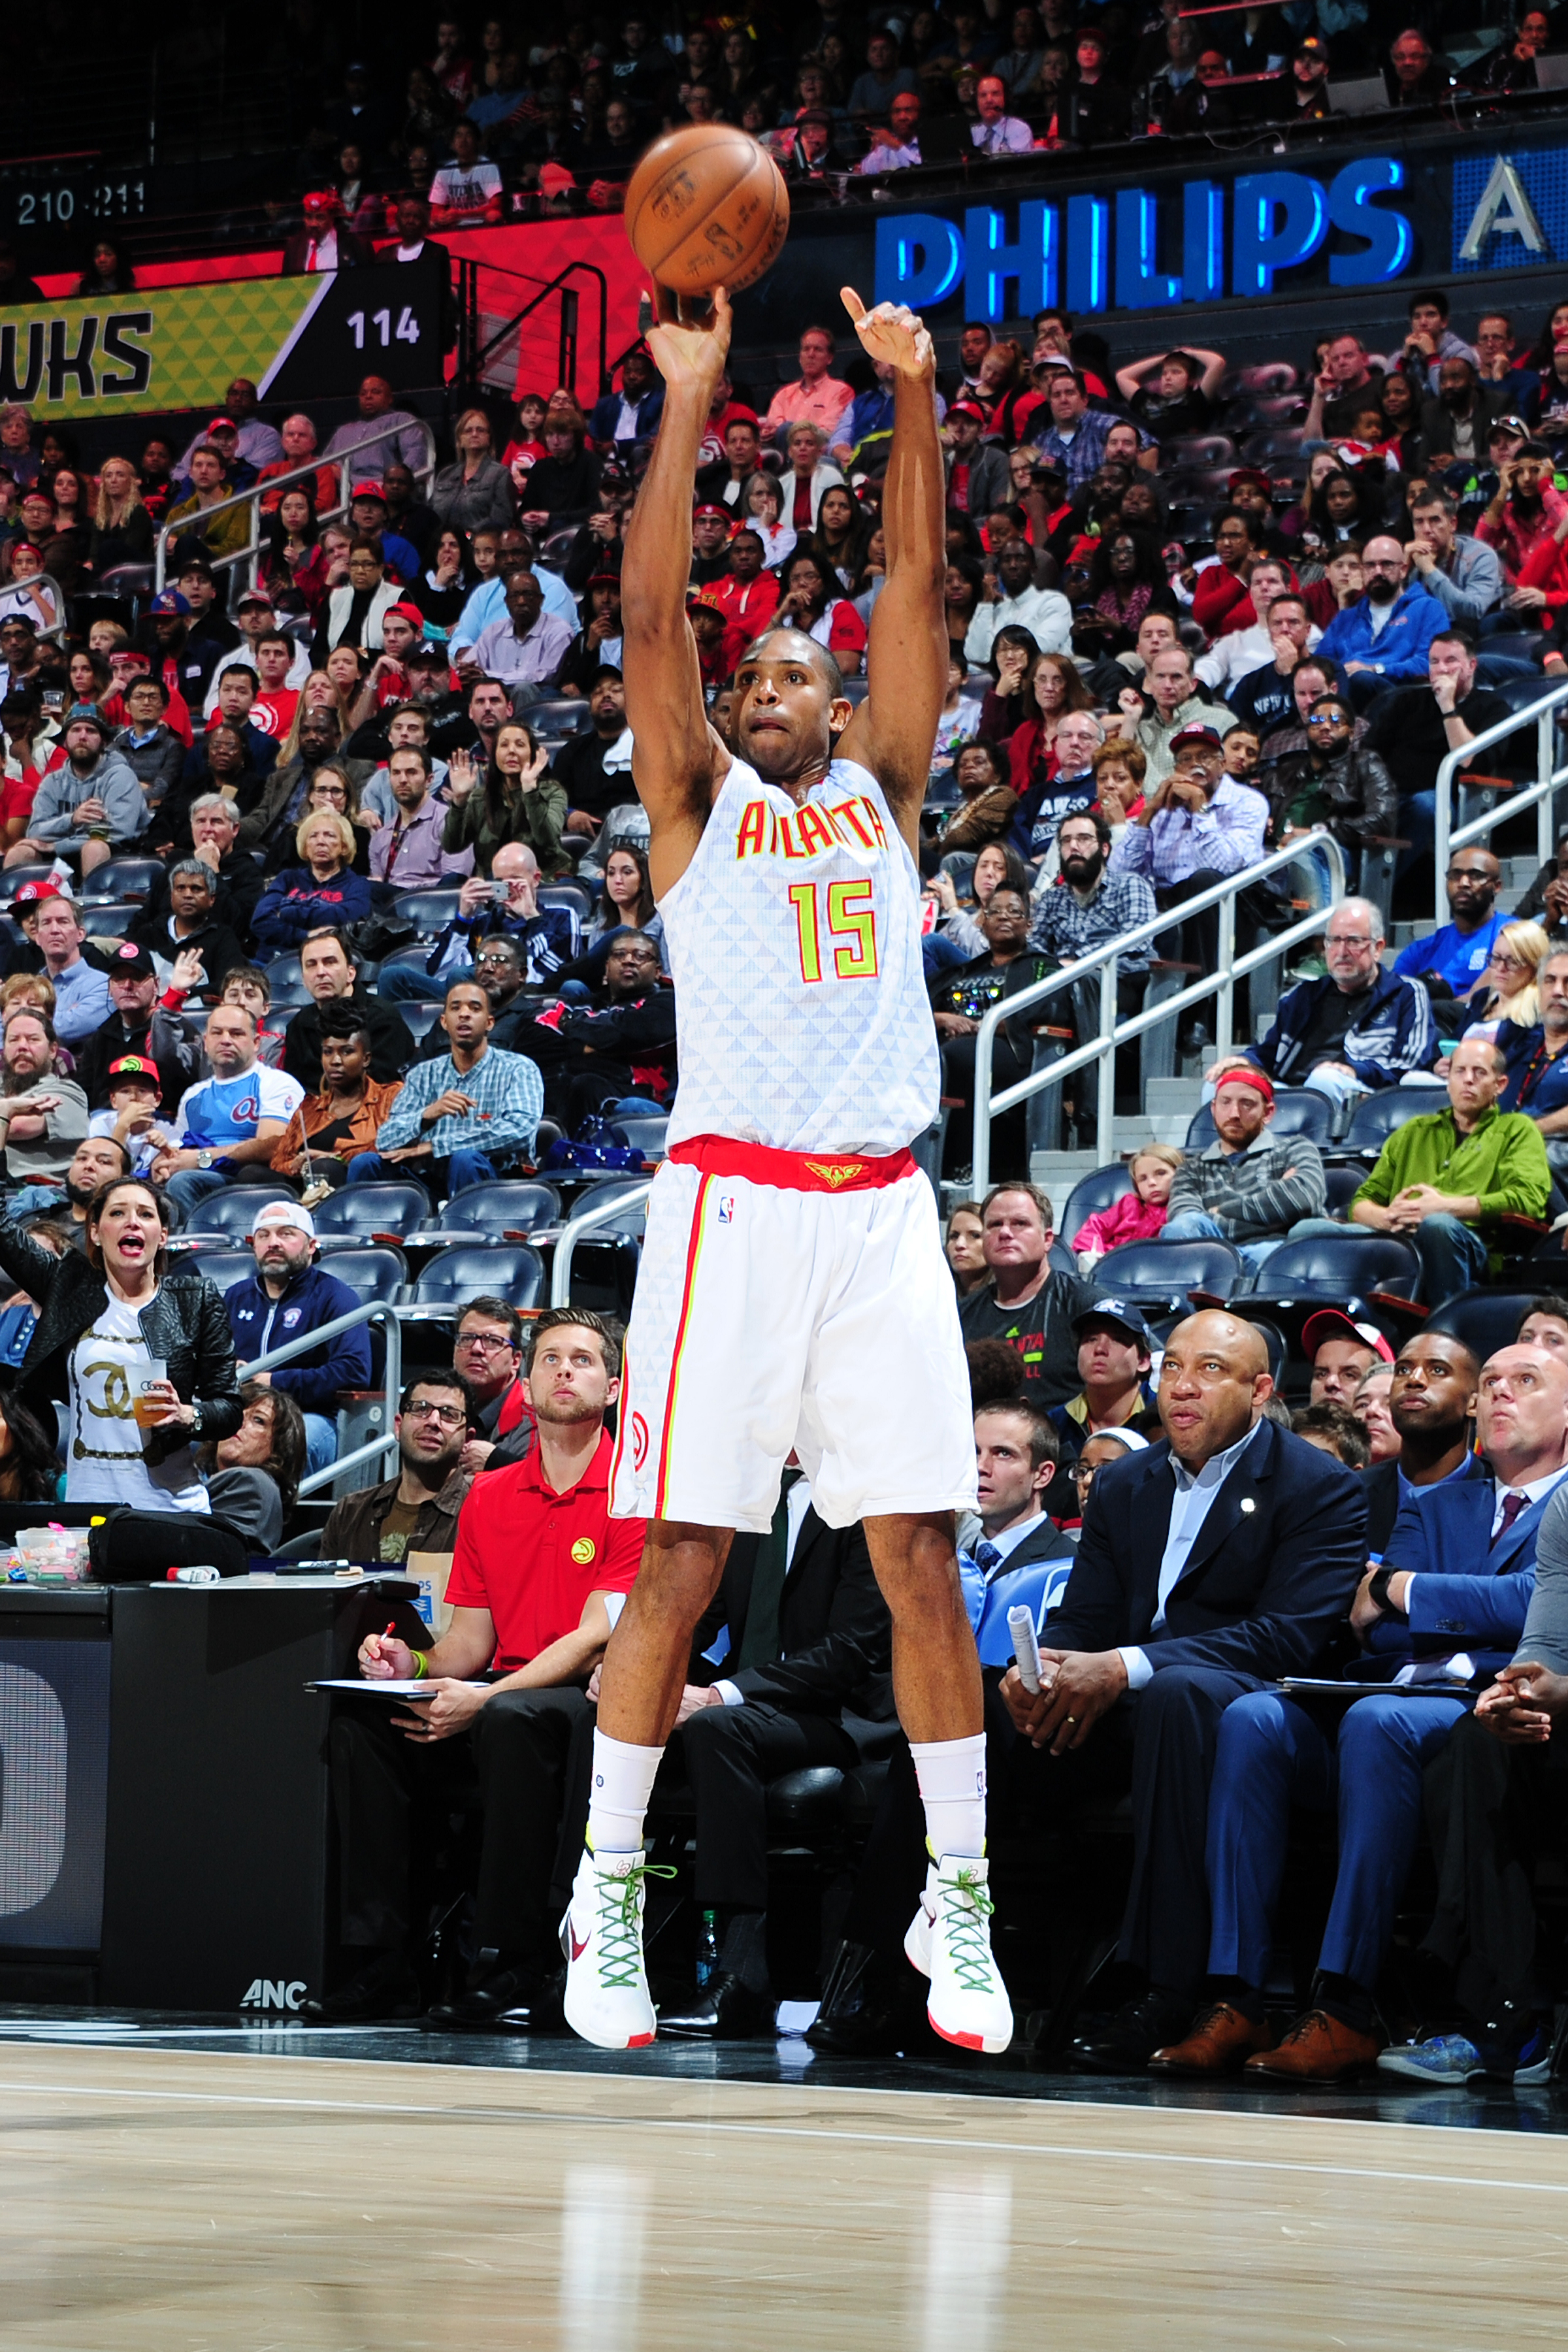 ATLANTA, GEORGIA - NOVEMBER 15: Al Horford #15 of the Atlanta Hawks shoots the ball during the game against the Utah Jazz on November 15, 2015 at Philips Center in Atlanta, Georgia.  (Photo by Scott Cunningham/NBAE via Getty Images)